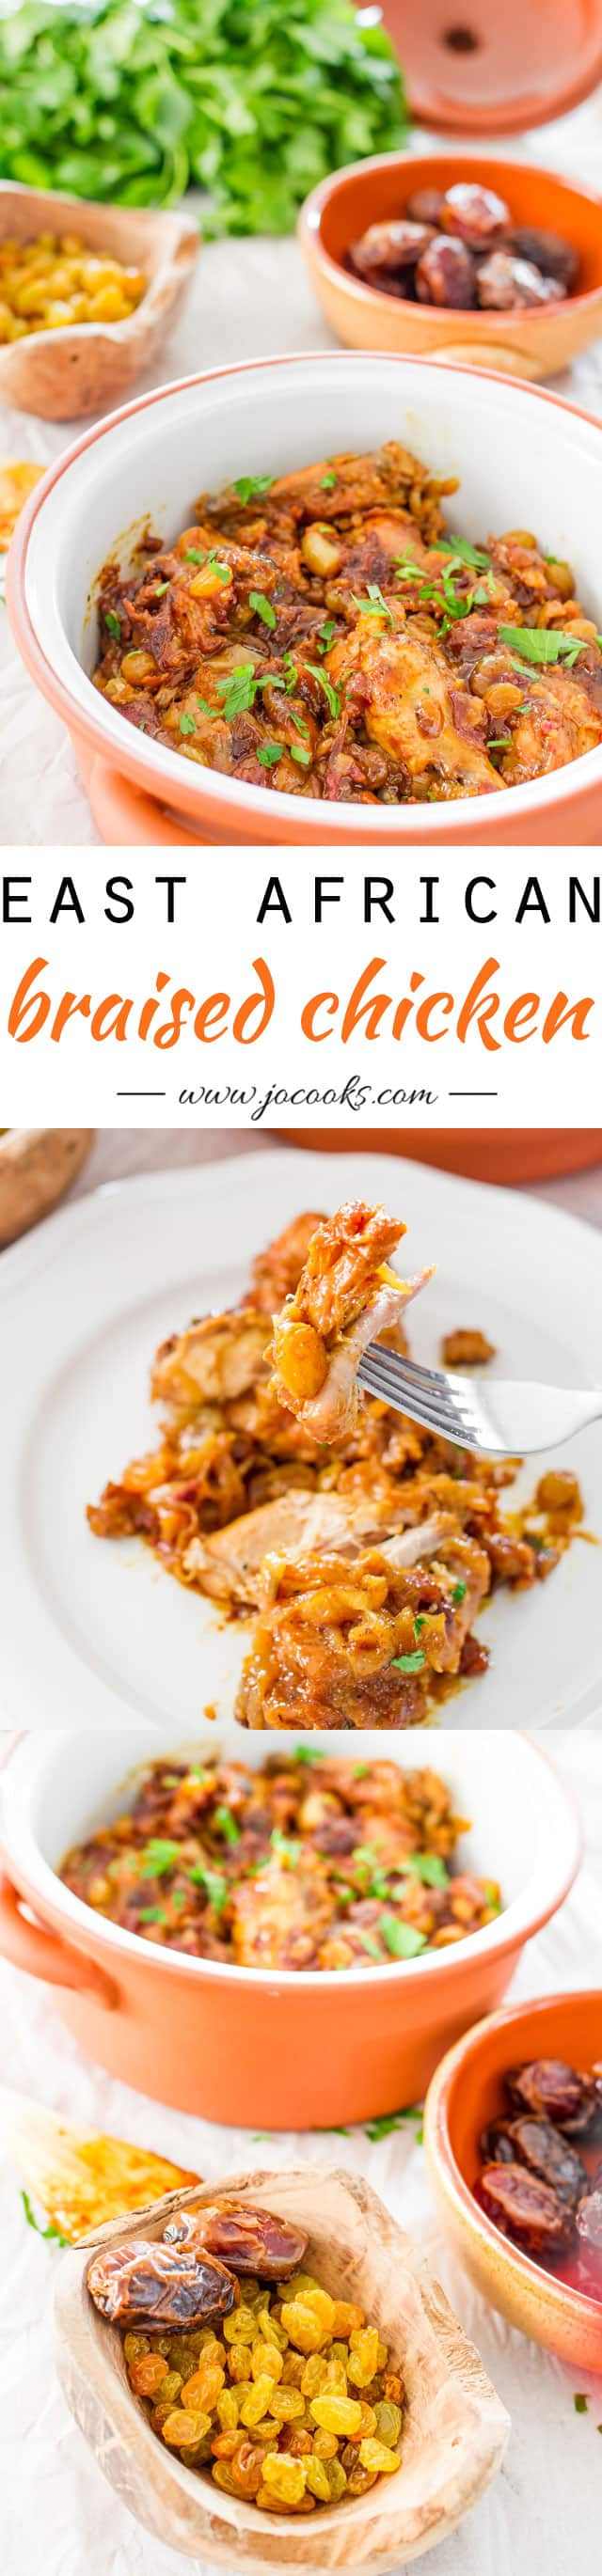 east-african-braised-chicken-collage